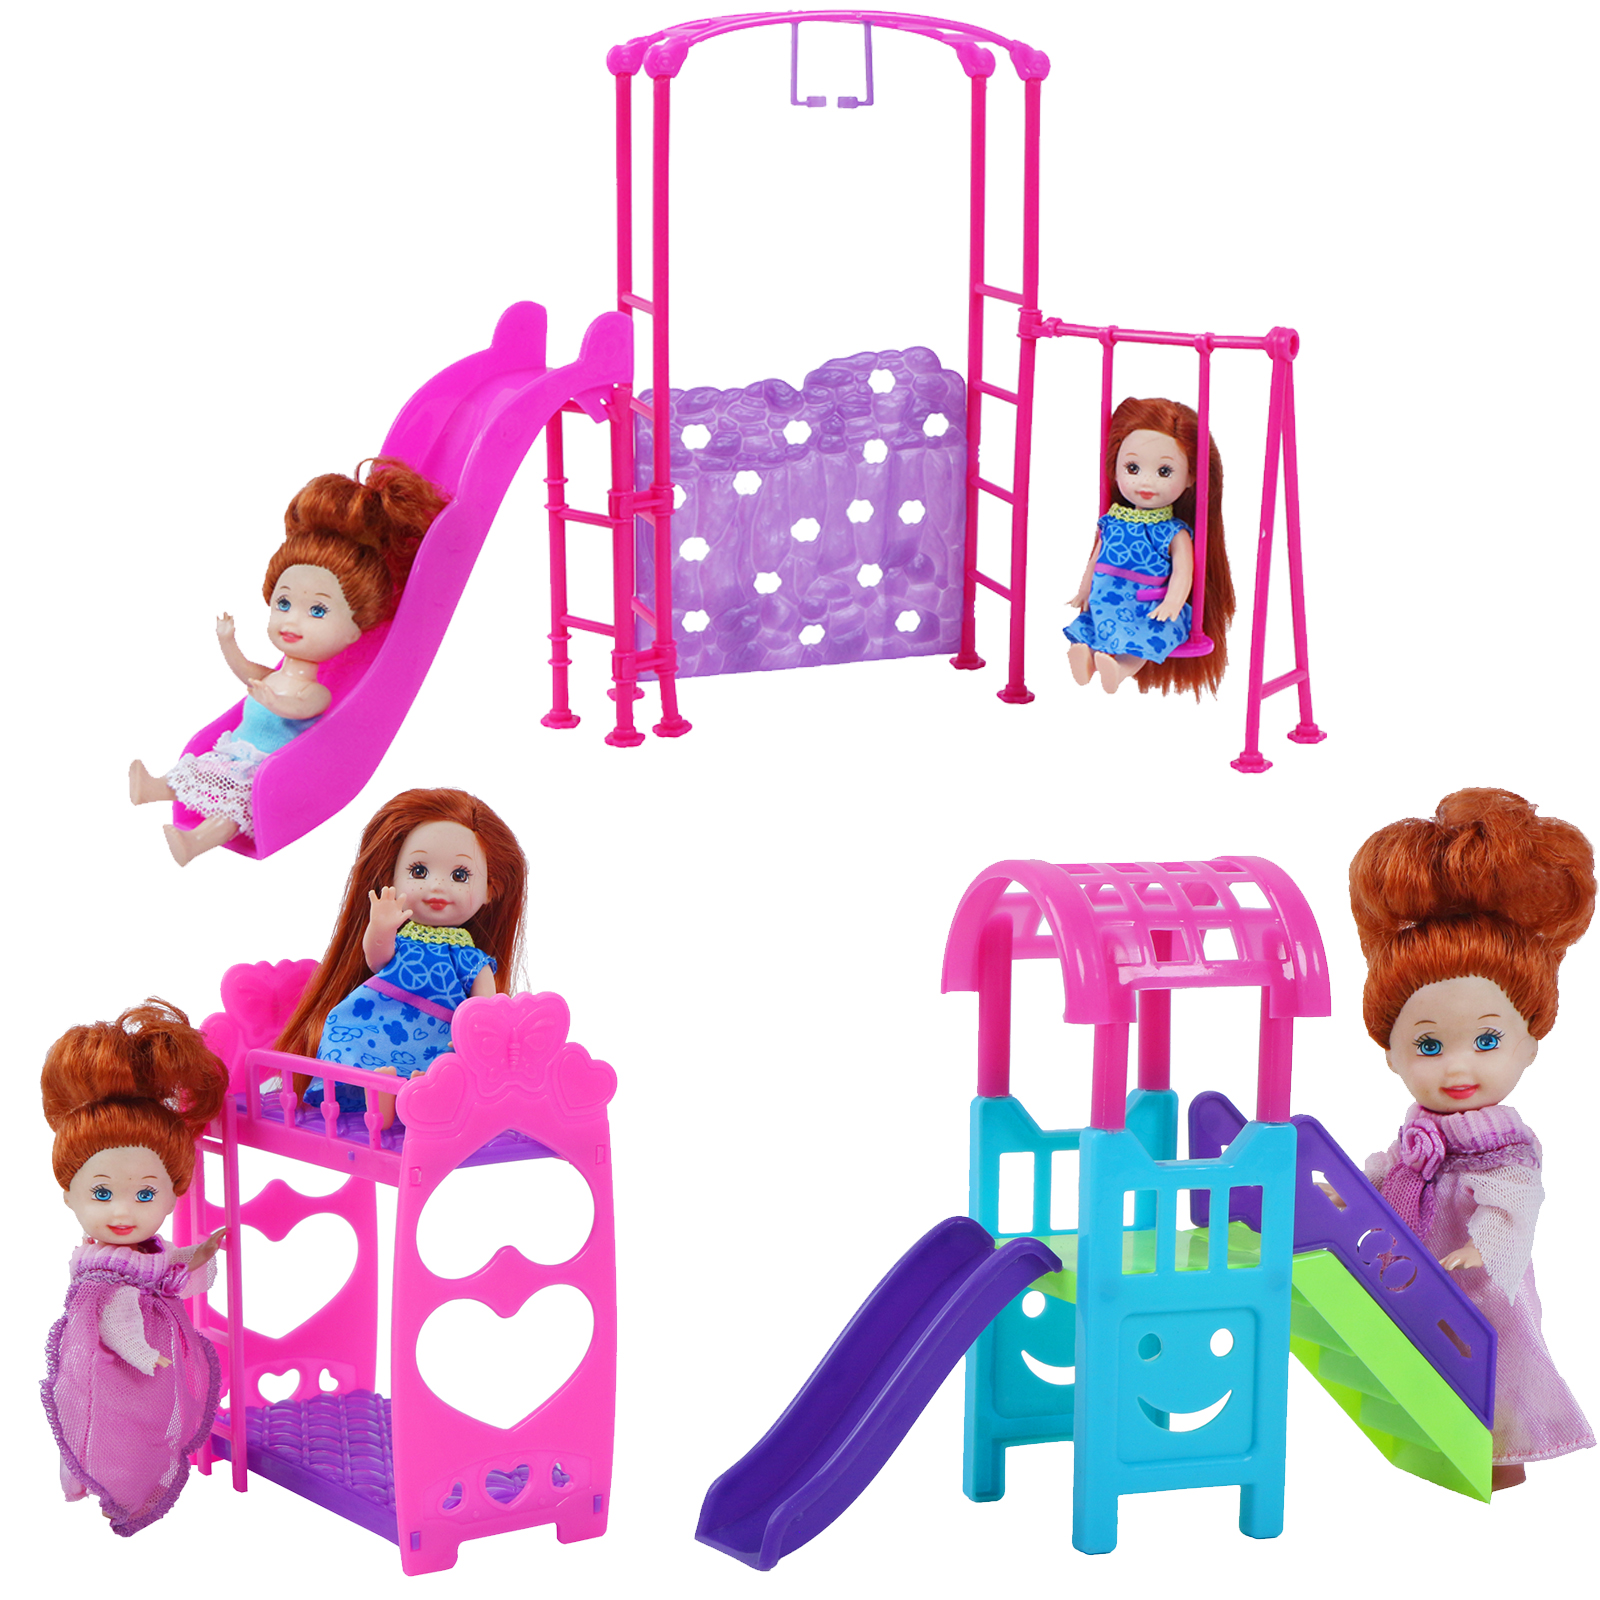 Letto A Castello Barbie.Cute Nursery Dollhouse Pink Infant Bunk Bed Swing Slide Furniture